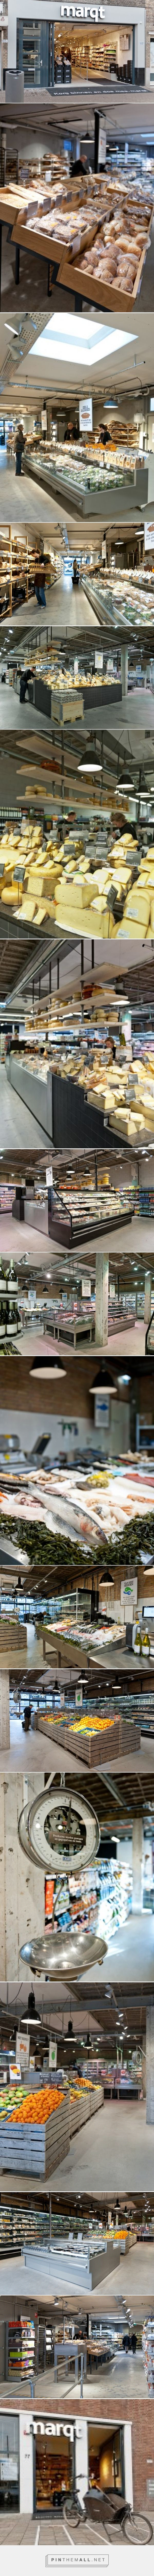 Marqt Rotterdam, Bergse Dorpsstraat | HEYLIGERS design + projects - created via http://pinthemall.net